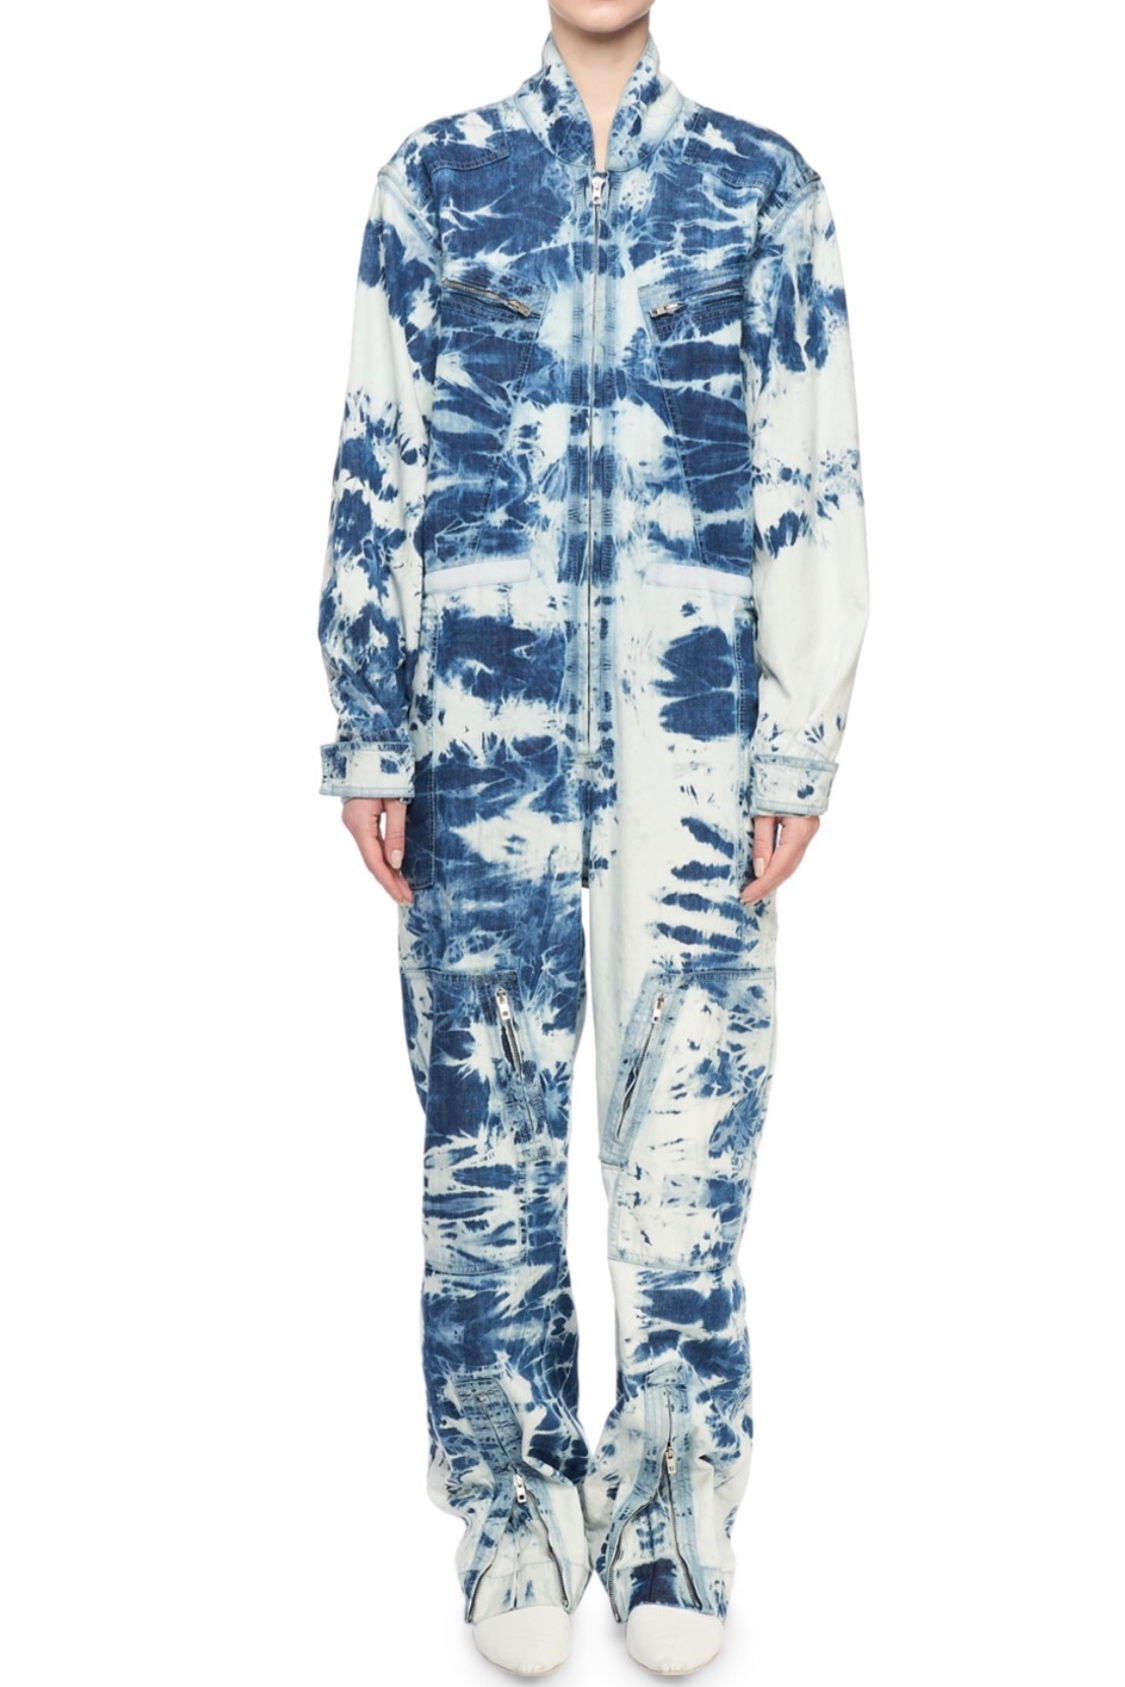 Stella McCartney Tie Dye Jumpsuit, $1,195